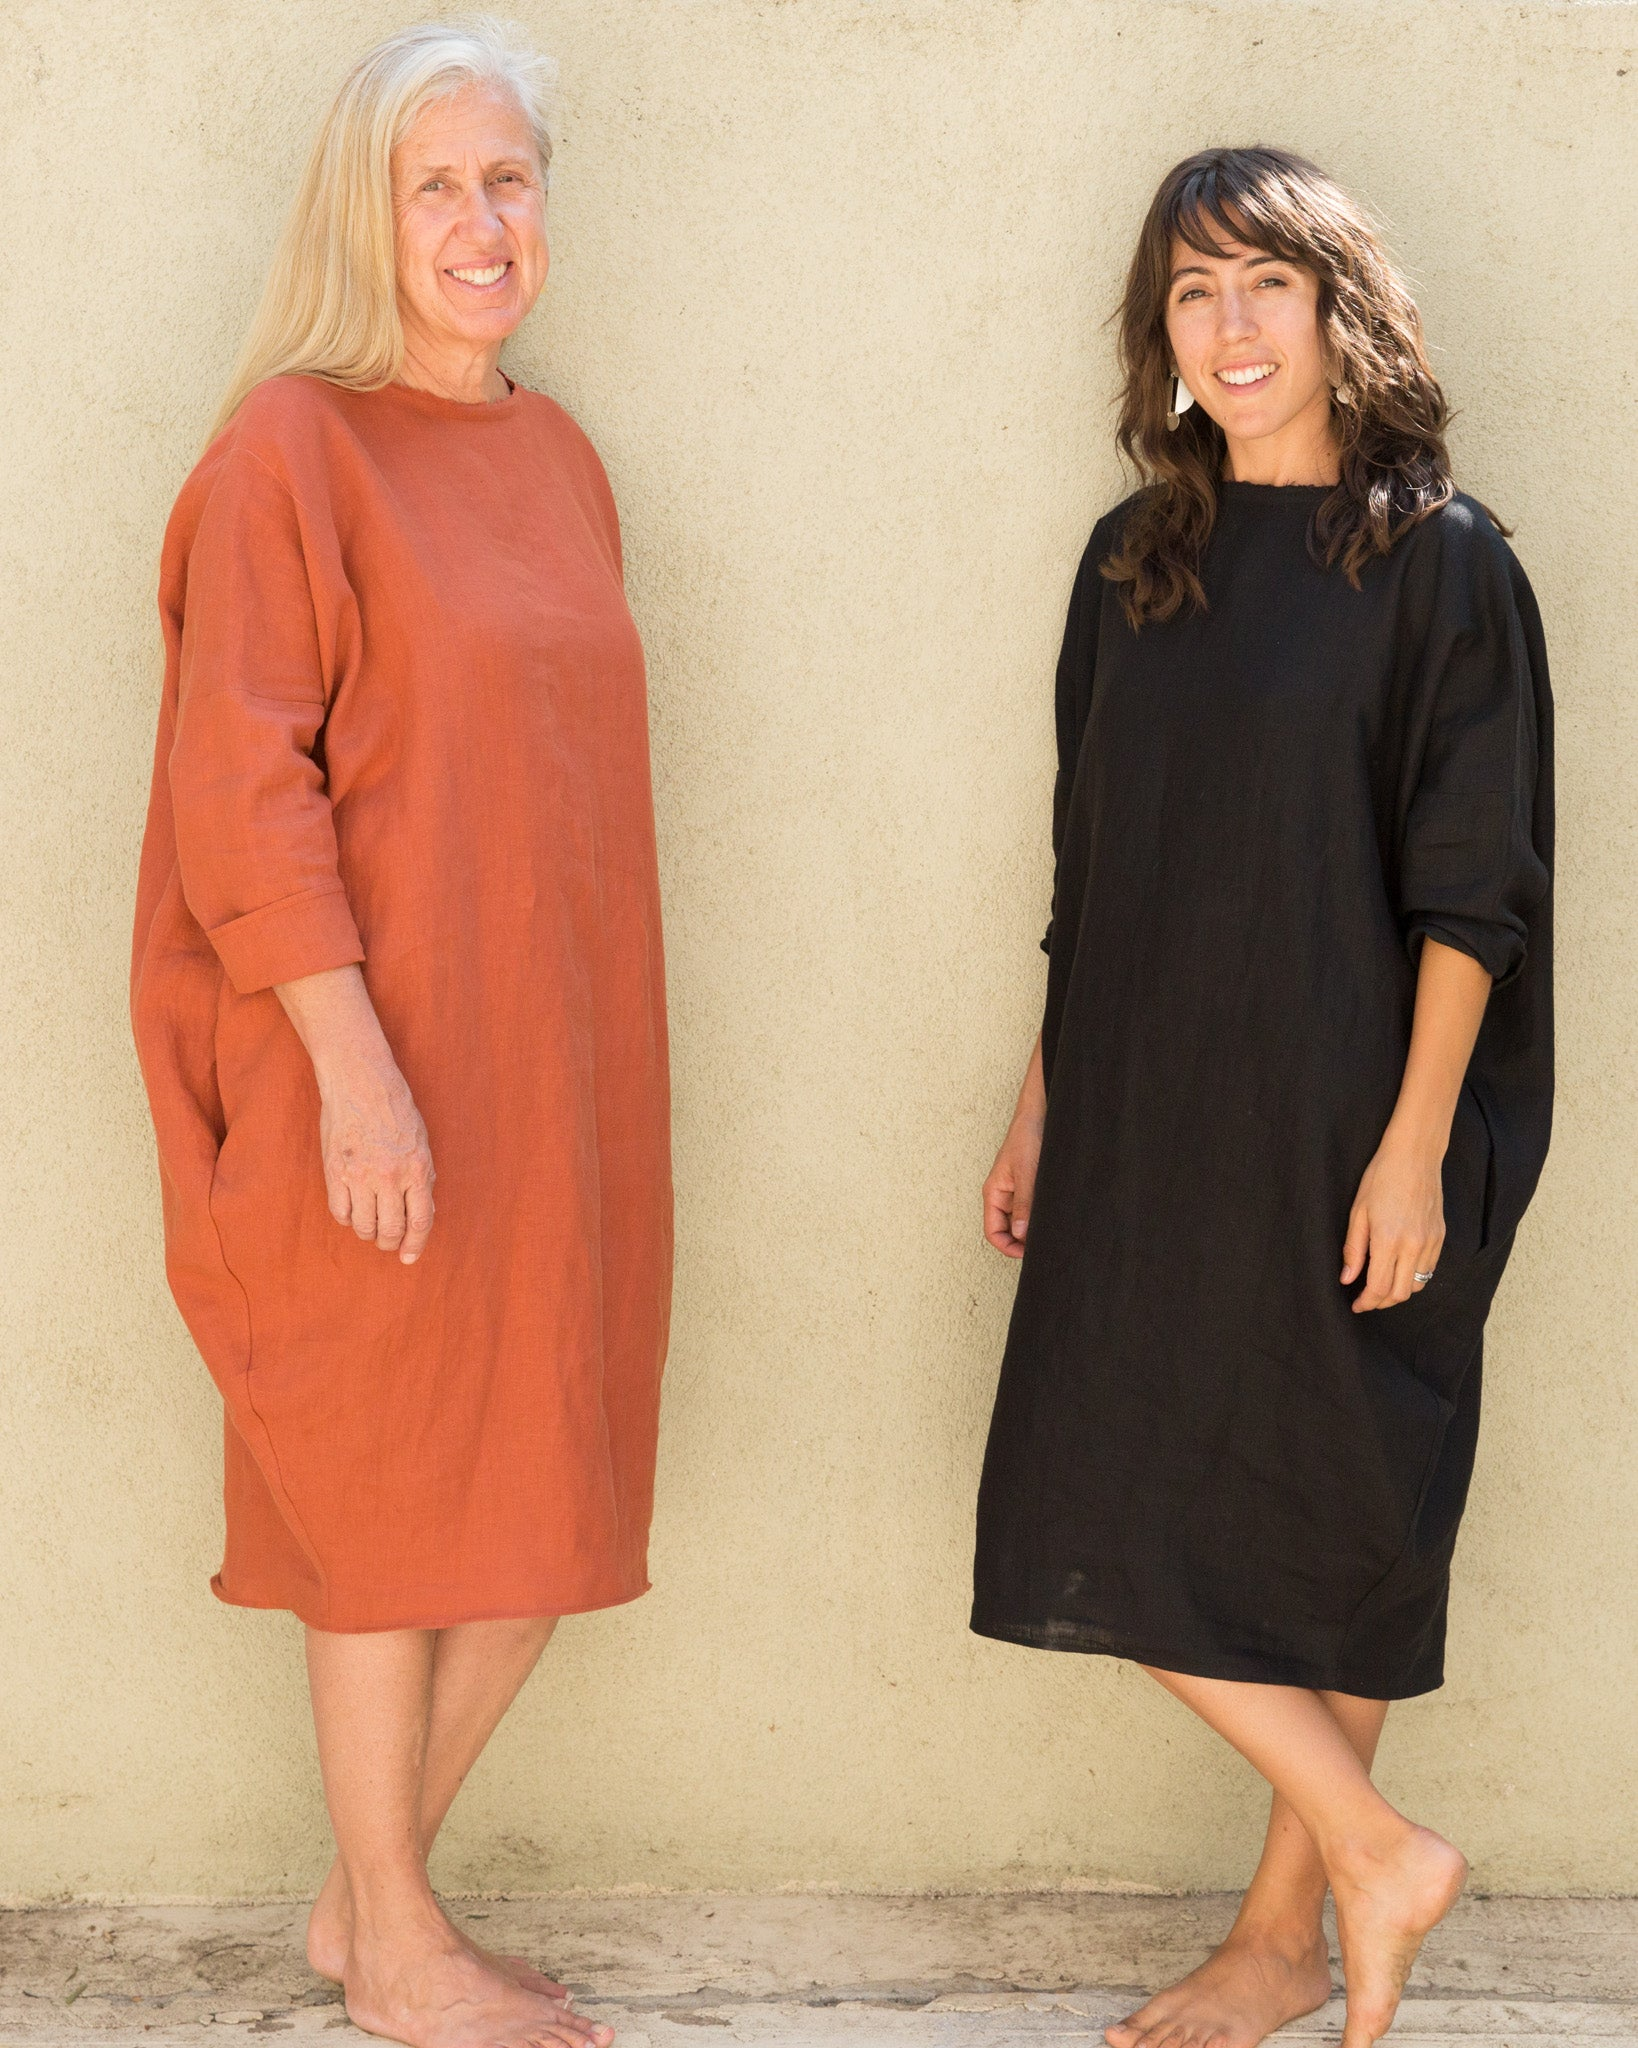 Dotter owners, Susanne McLean and Annika Huston, wearing Robyn King dresses in front of green wall